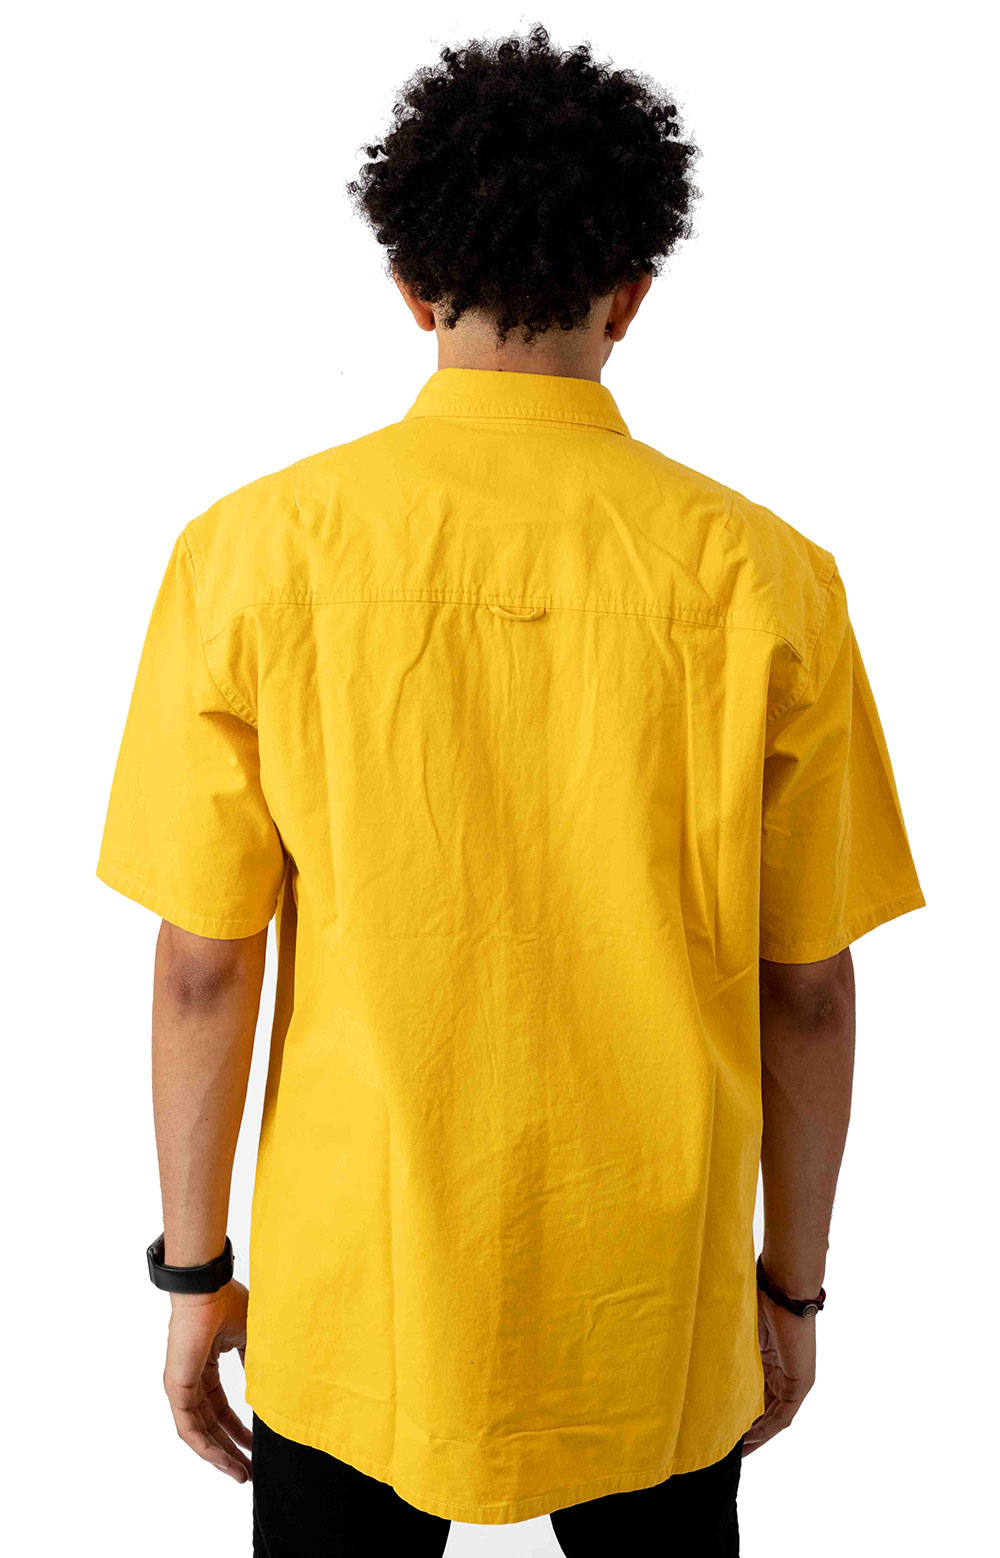 Buy Button-Up Shirt - Yellow  3